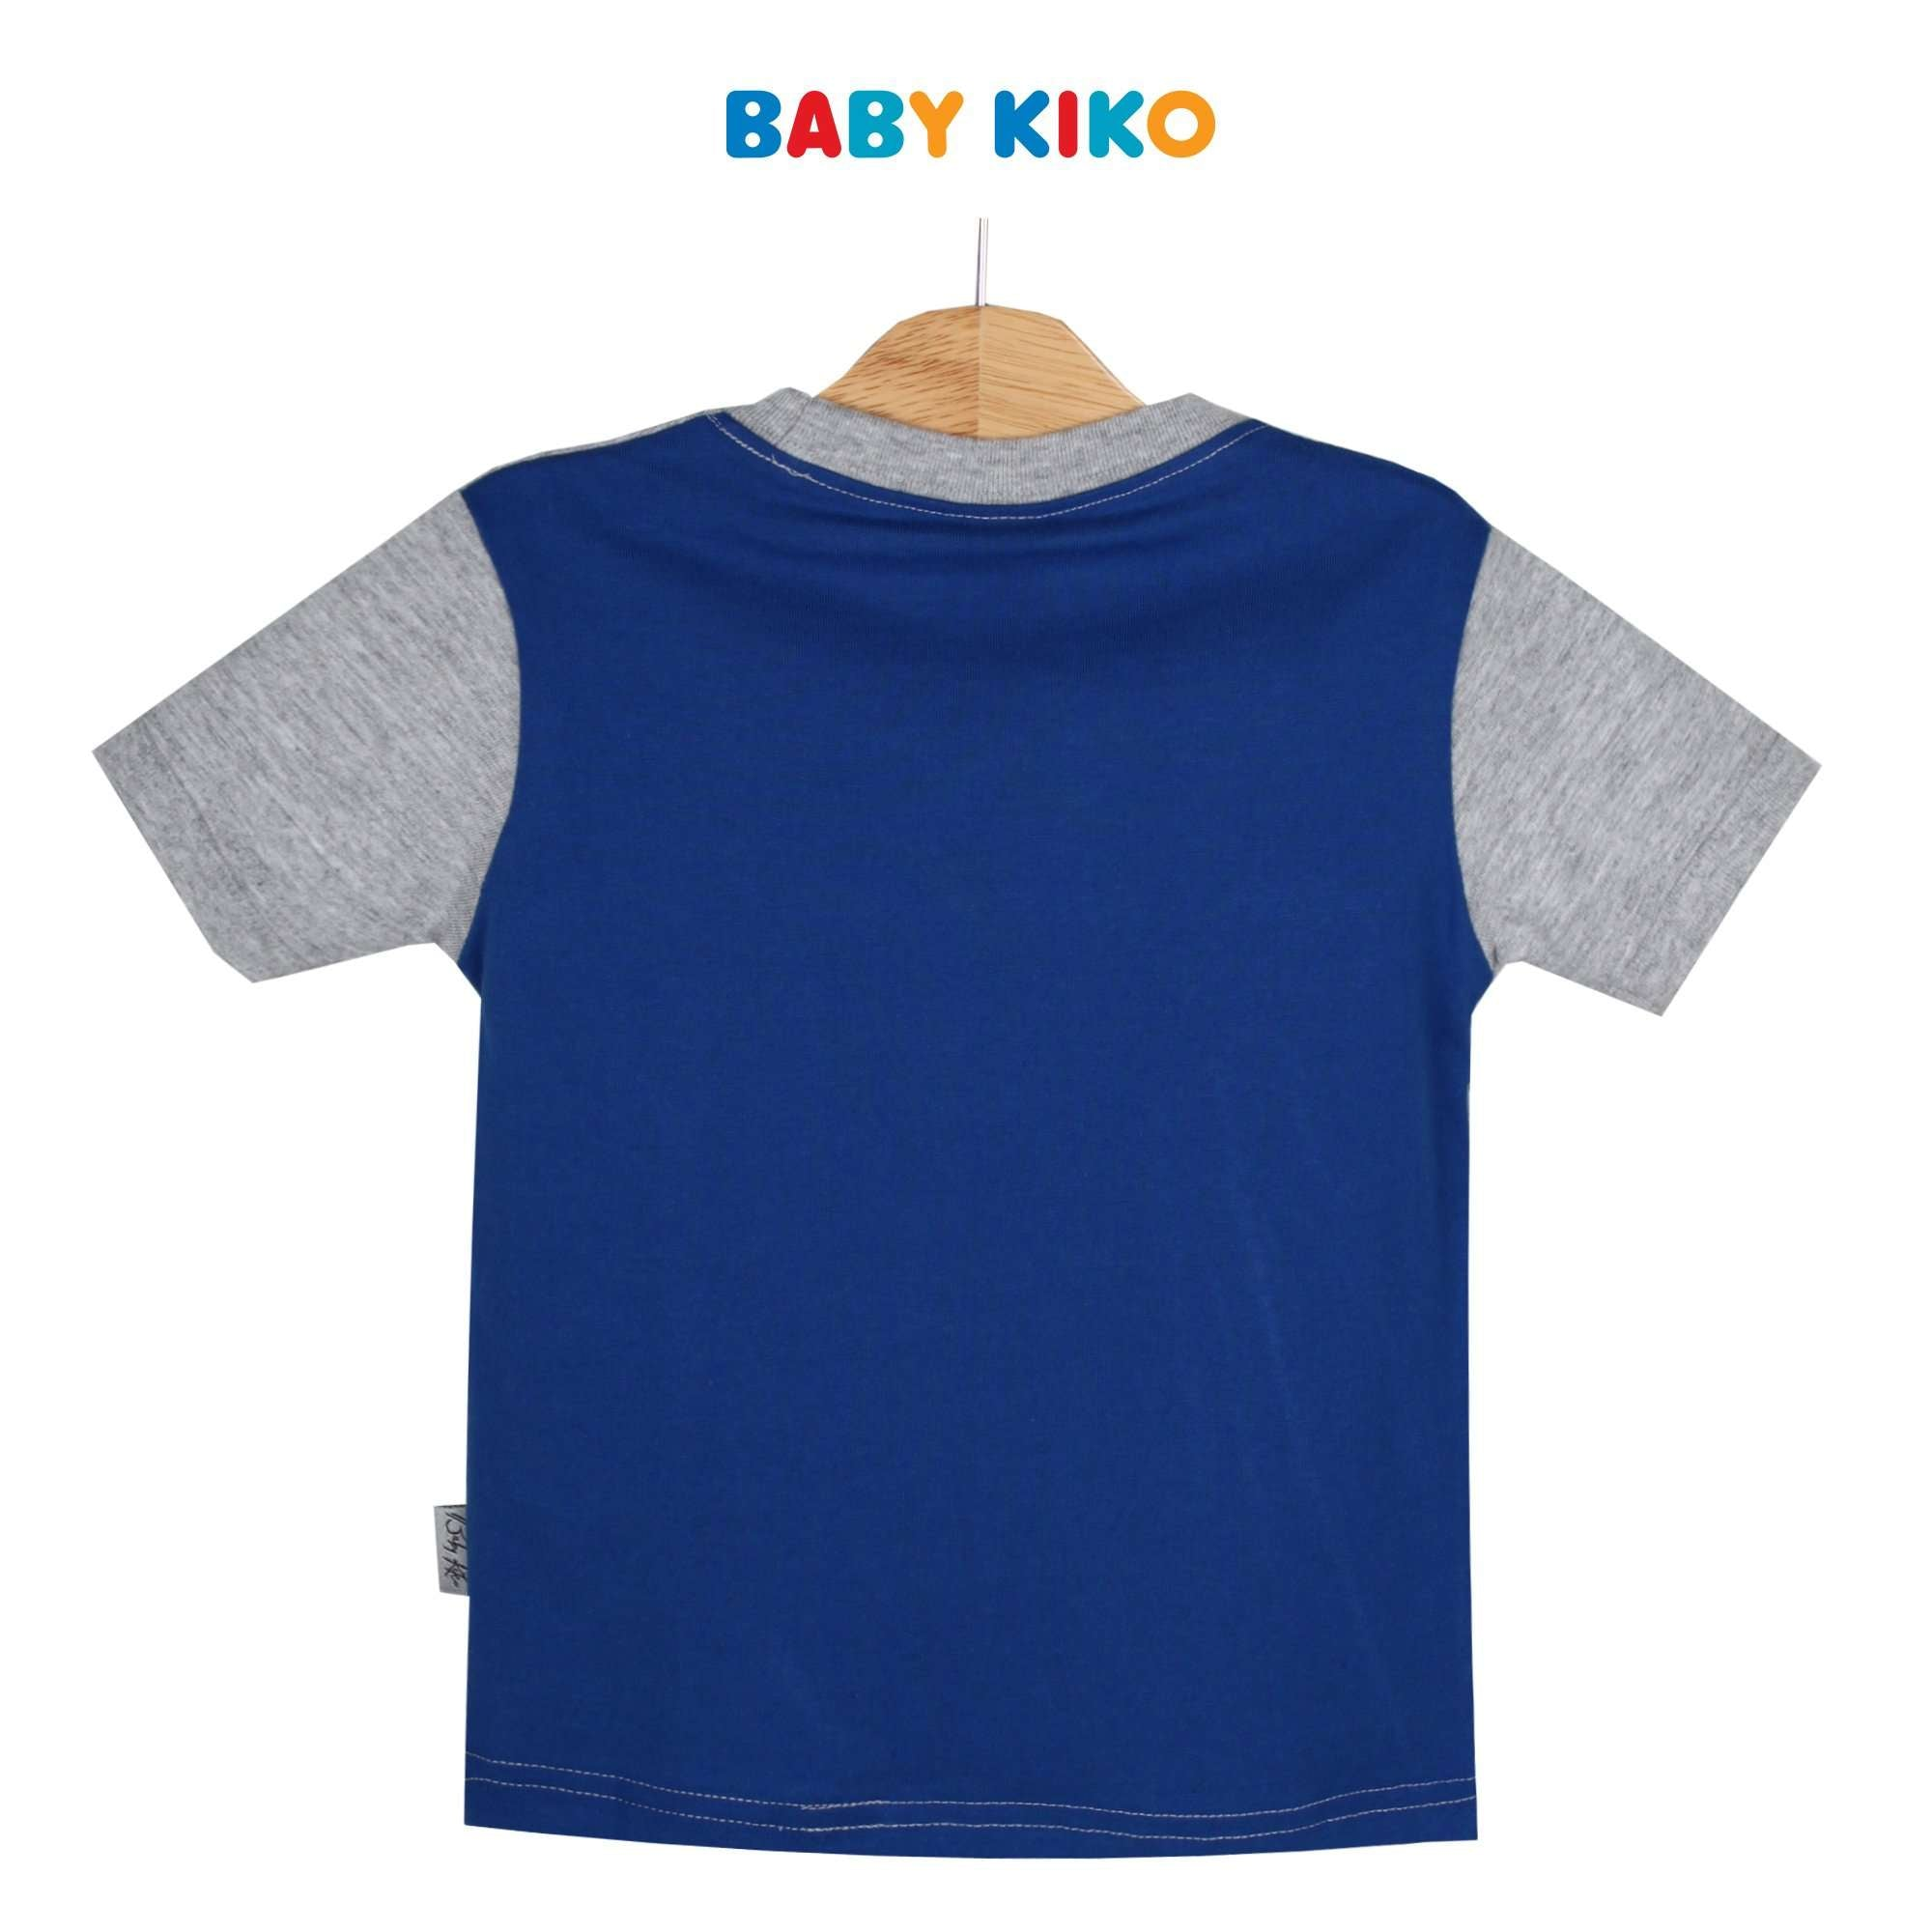 Baby KIKO Toddler Boy Short Sleeve Tee - 335121-111 : Buy Baby KIKO online at CMG.MY